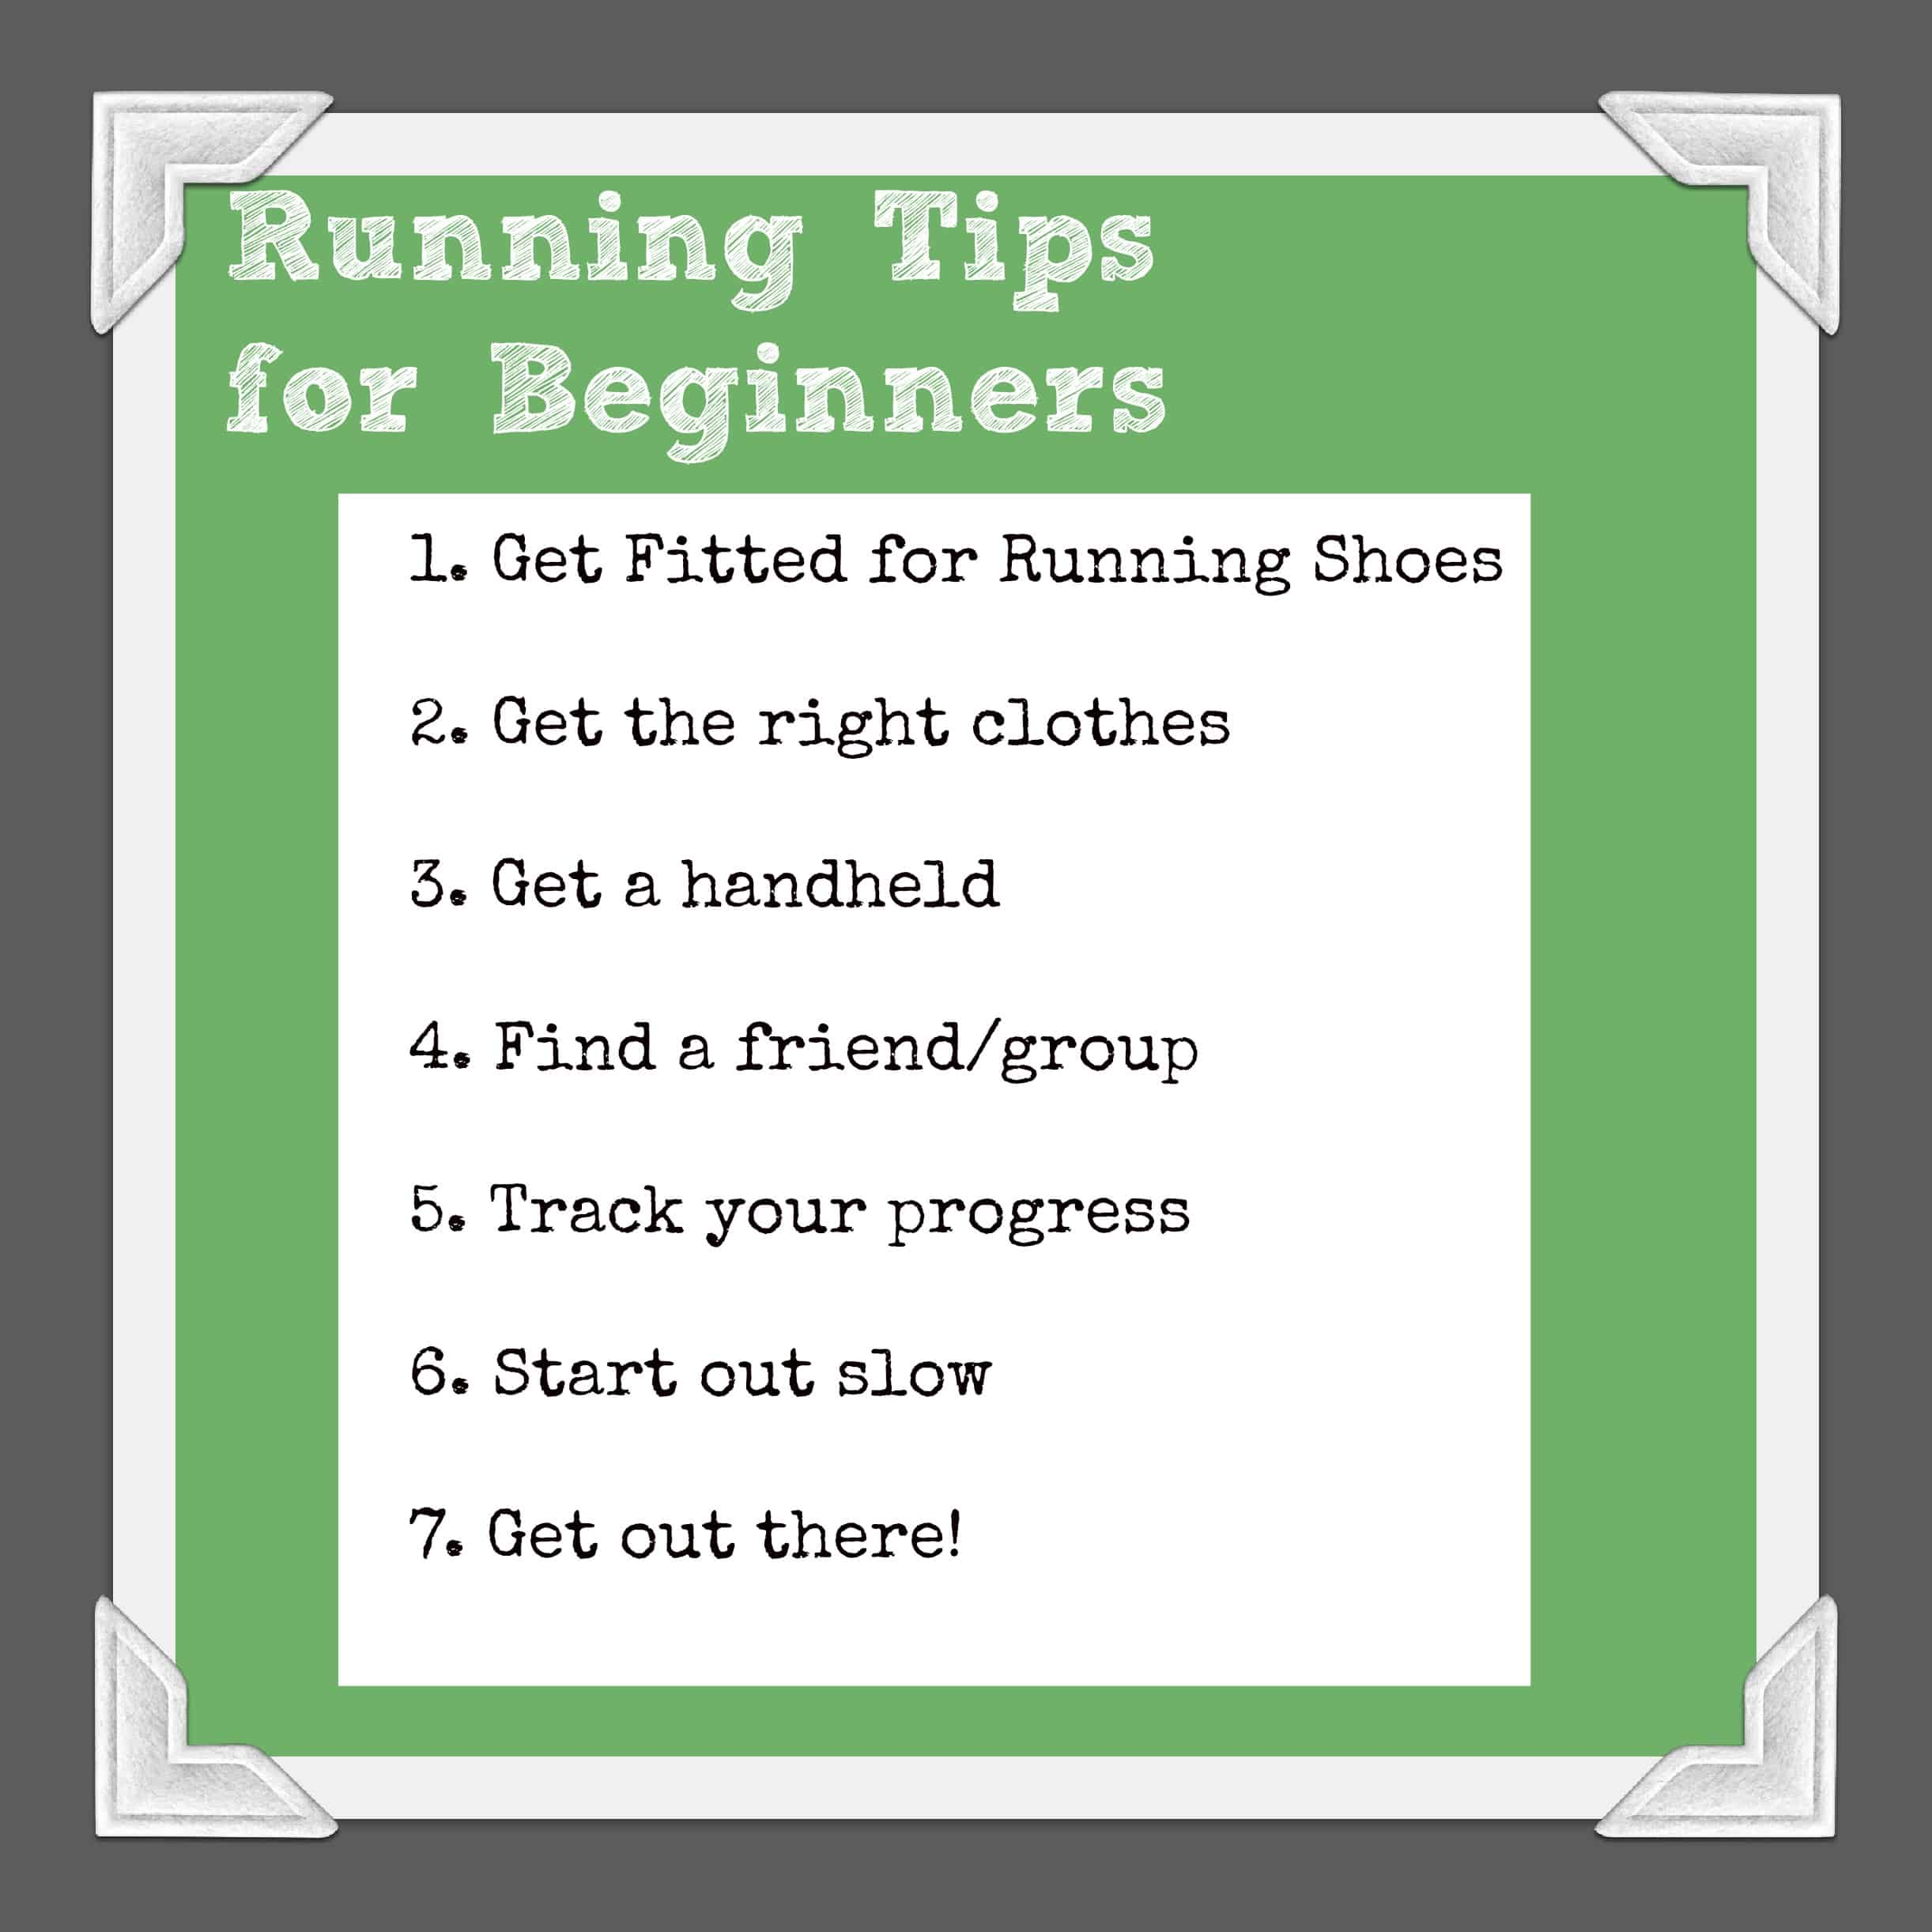 Get Ed For Running Shoes The Proper Your Feet Are A Necessity When You Beginning To Run Don T Necessarily Same